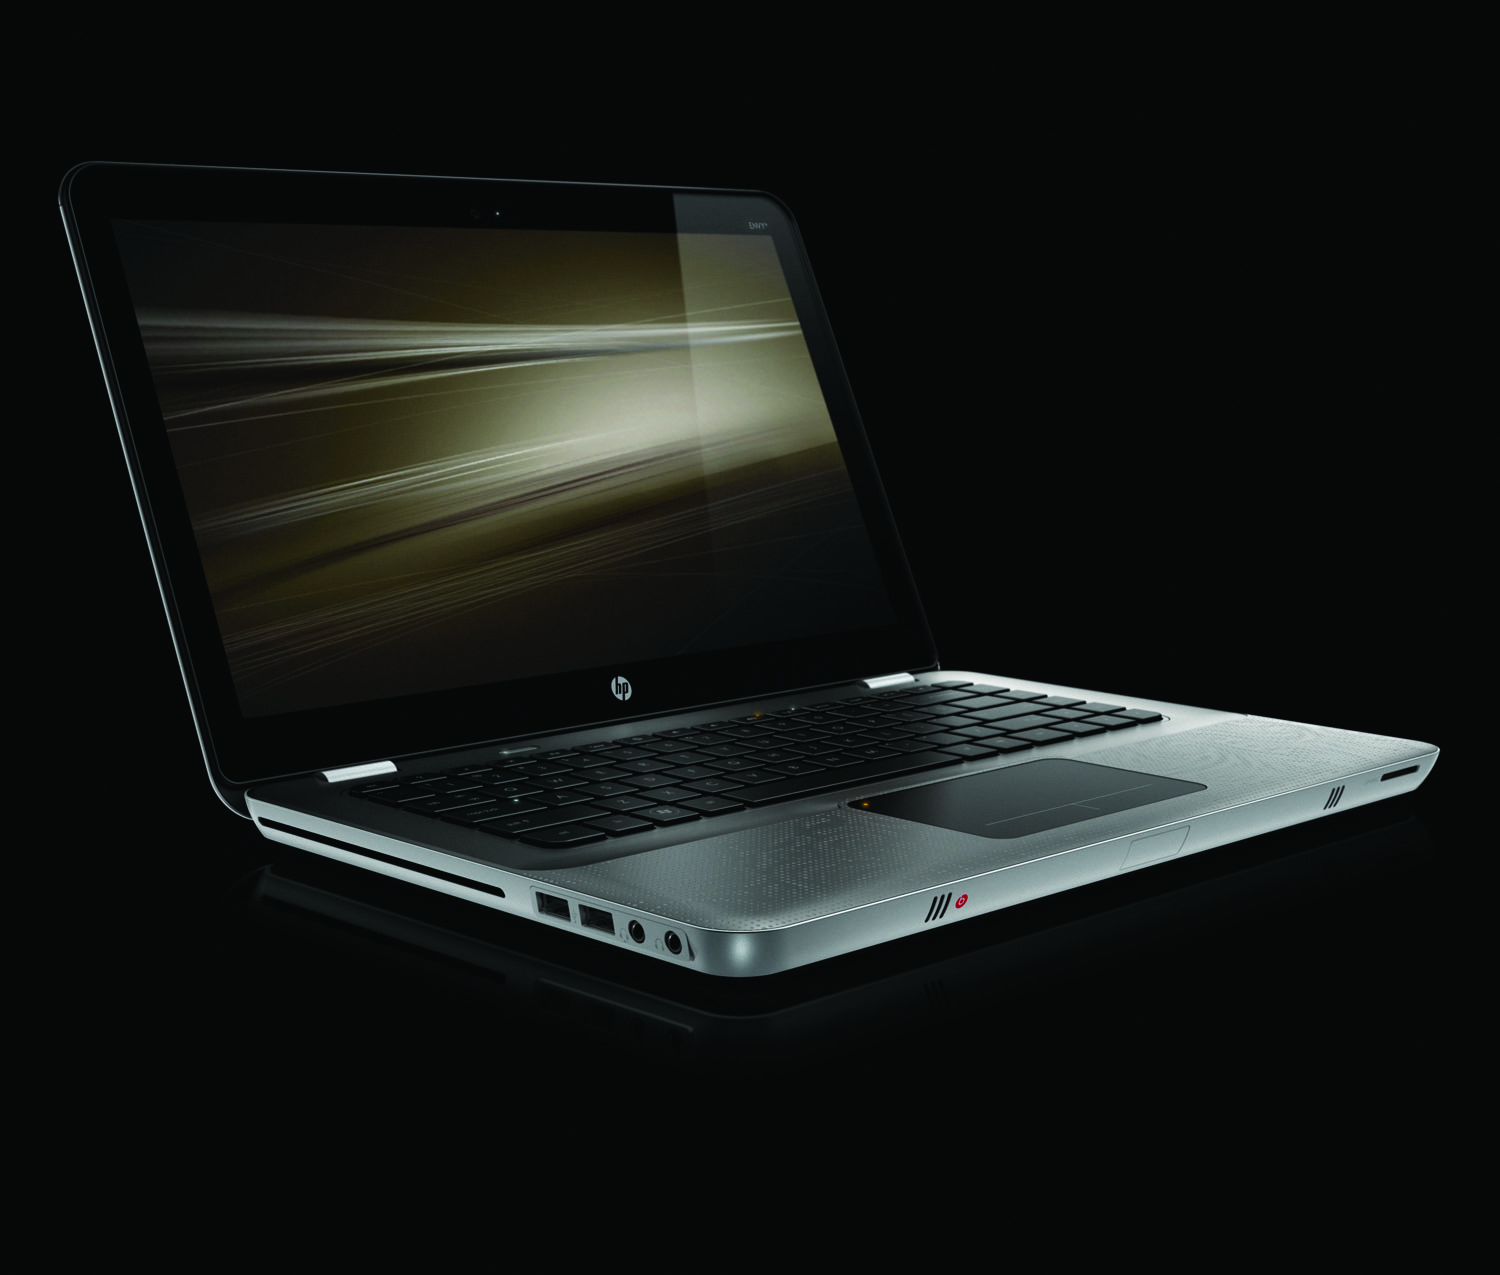 HP Envy 14, front right on black